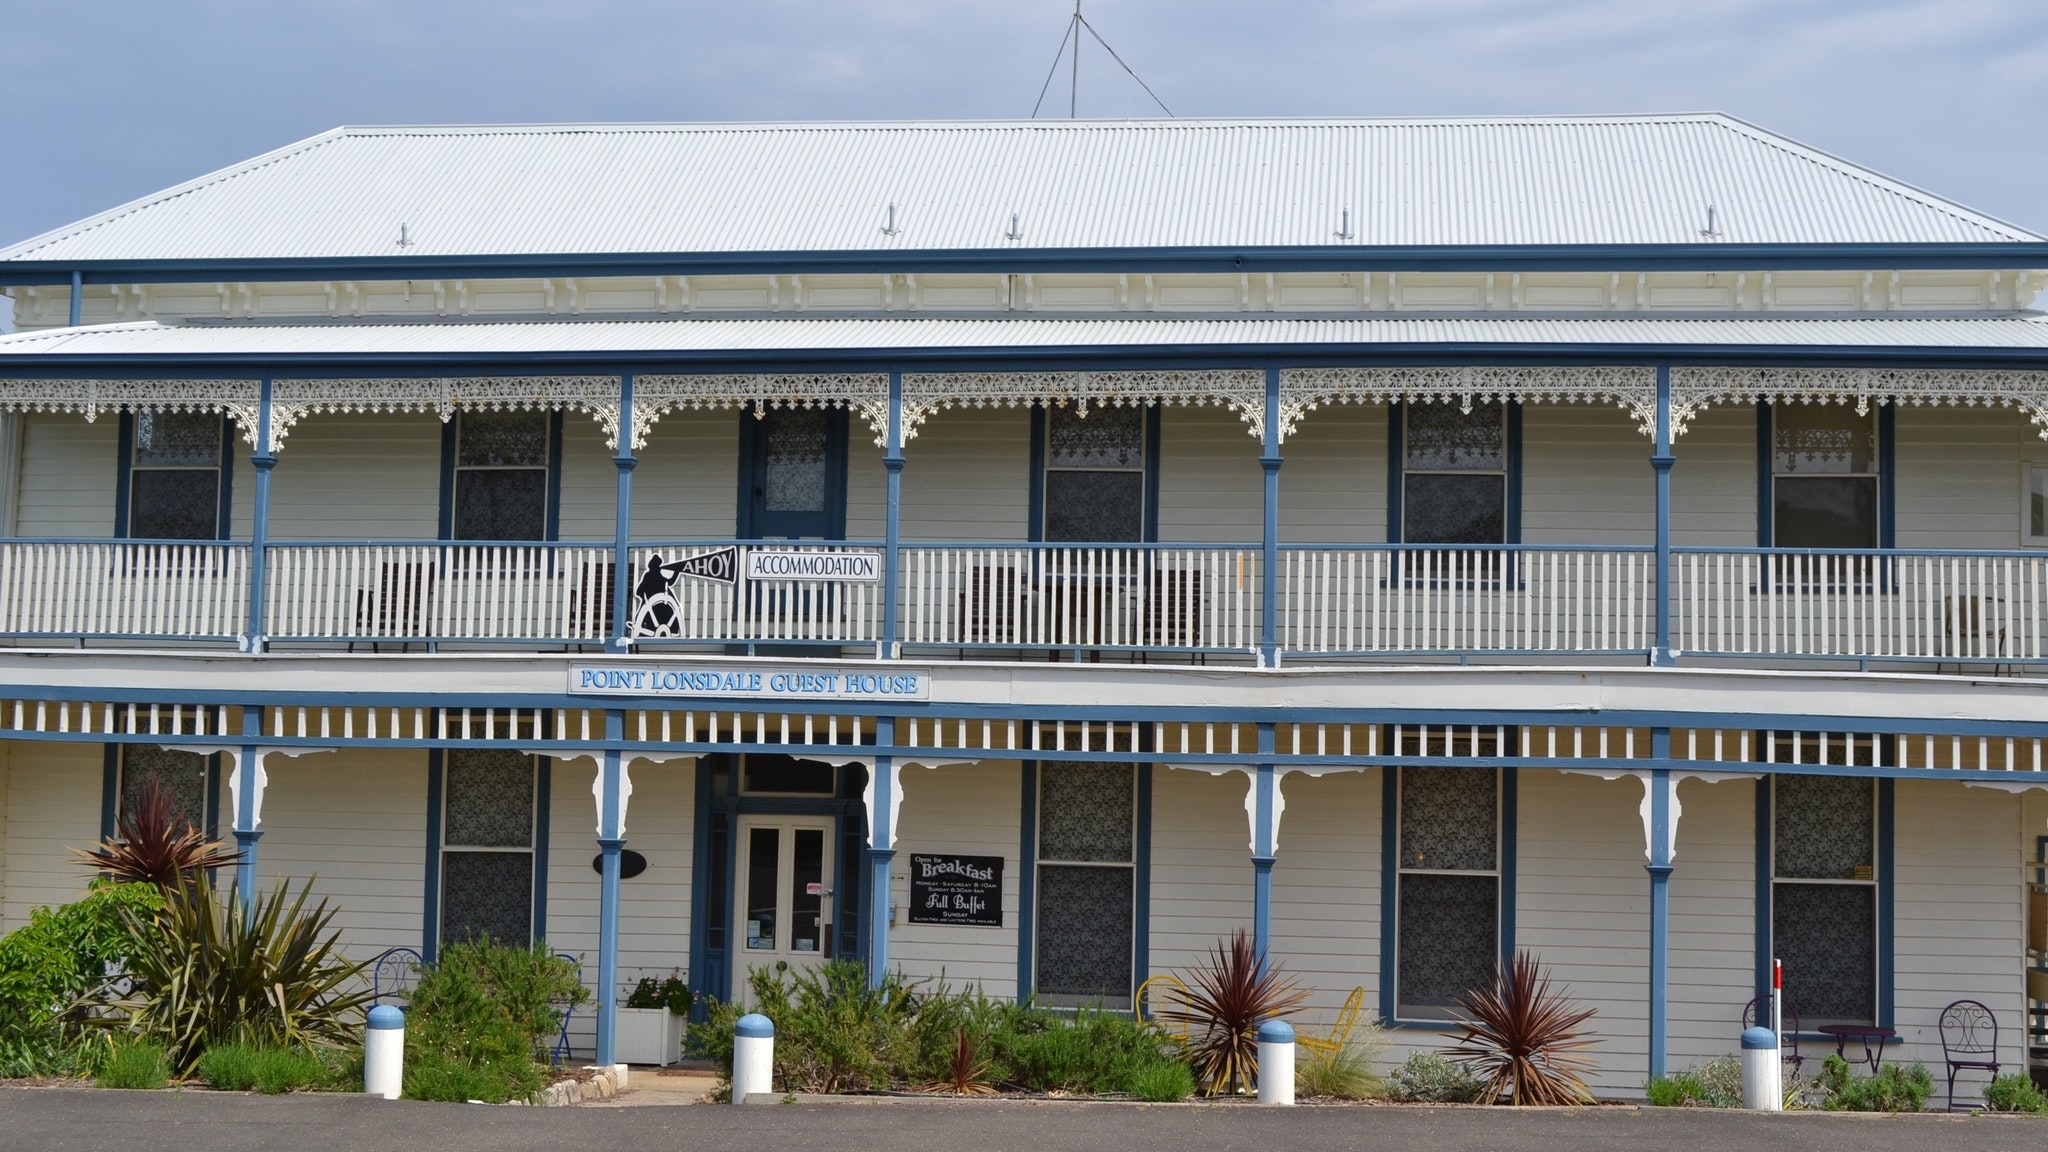 House Accommodation Point Lonsdale Guest House Accommodation Geelong The Bellarine